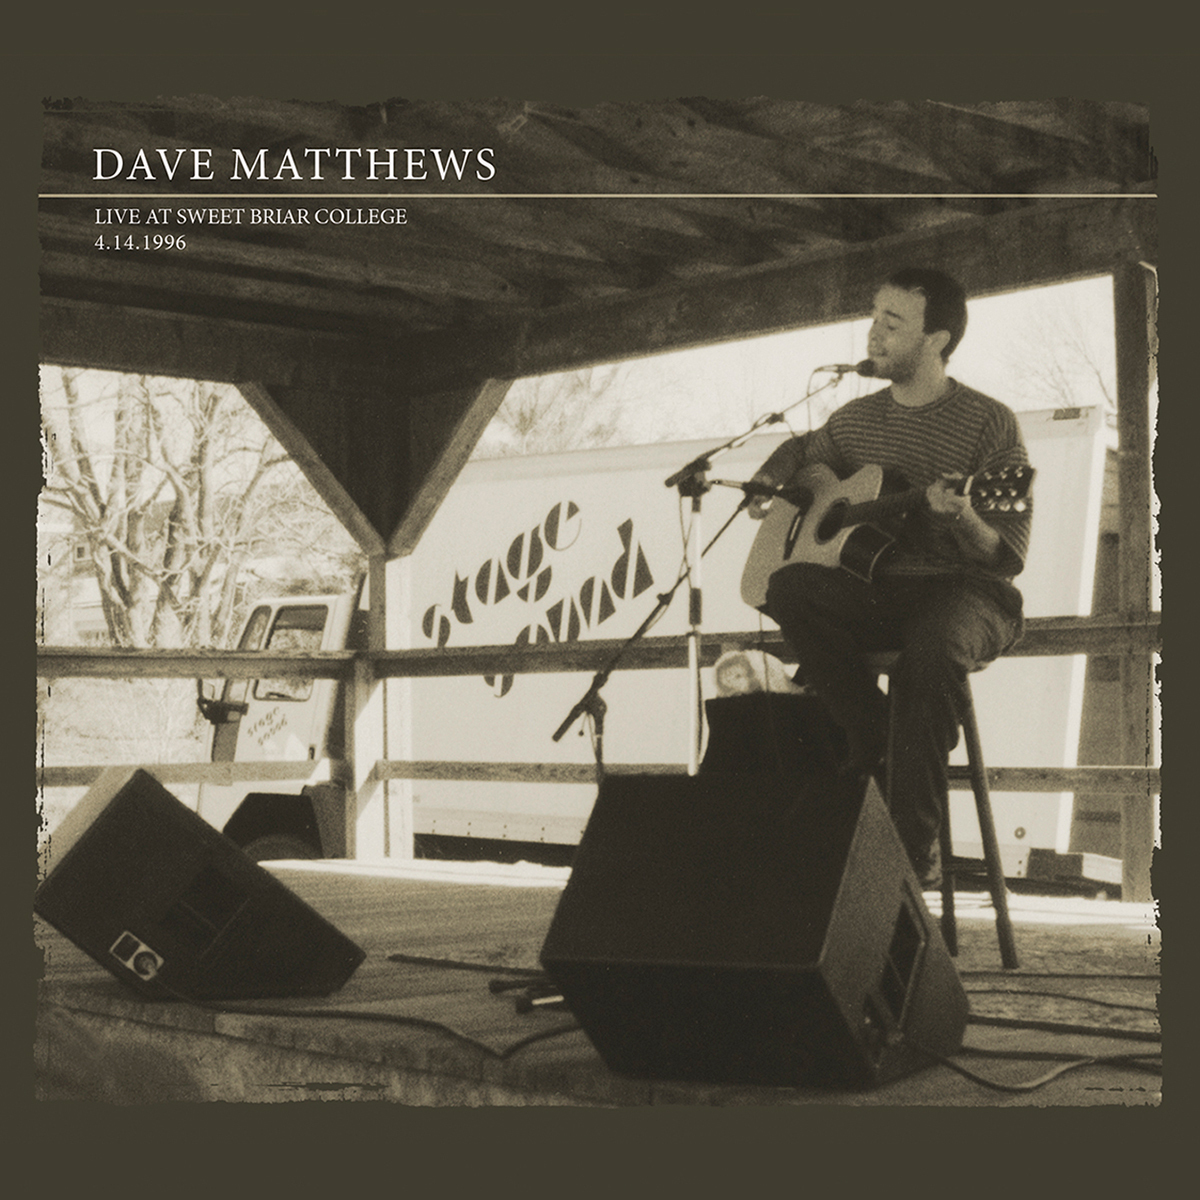 Dave Matthews, Actor: Just Go with It. Dave Matthews was born on January 9, in Johannesburg, South Africa as David John Matthews. He has been married to Jennifer Ashley Harper since August 10, They have three wxilkjkj.tk: Jan 09,